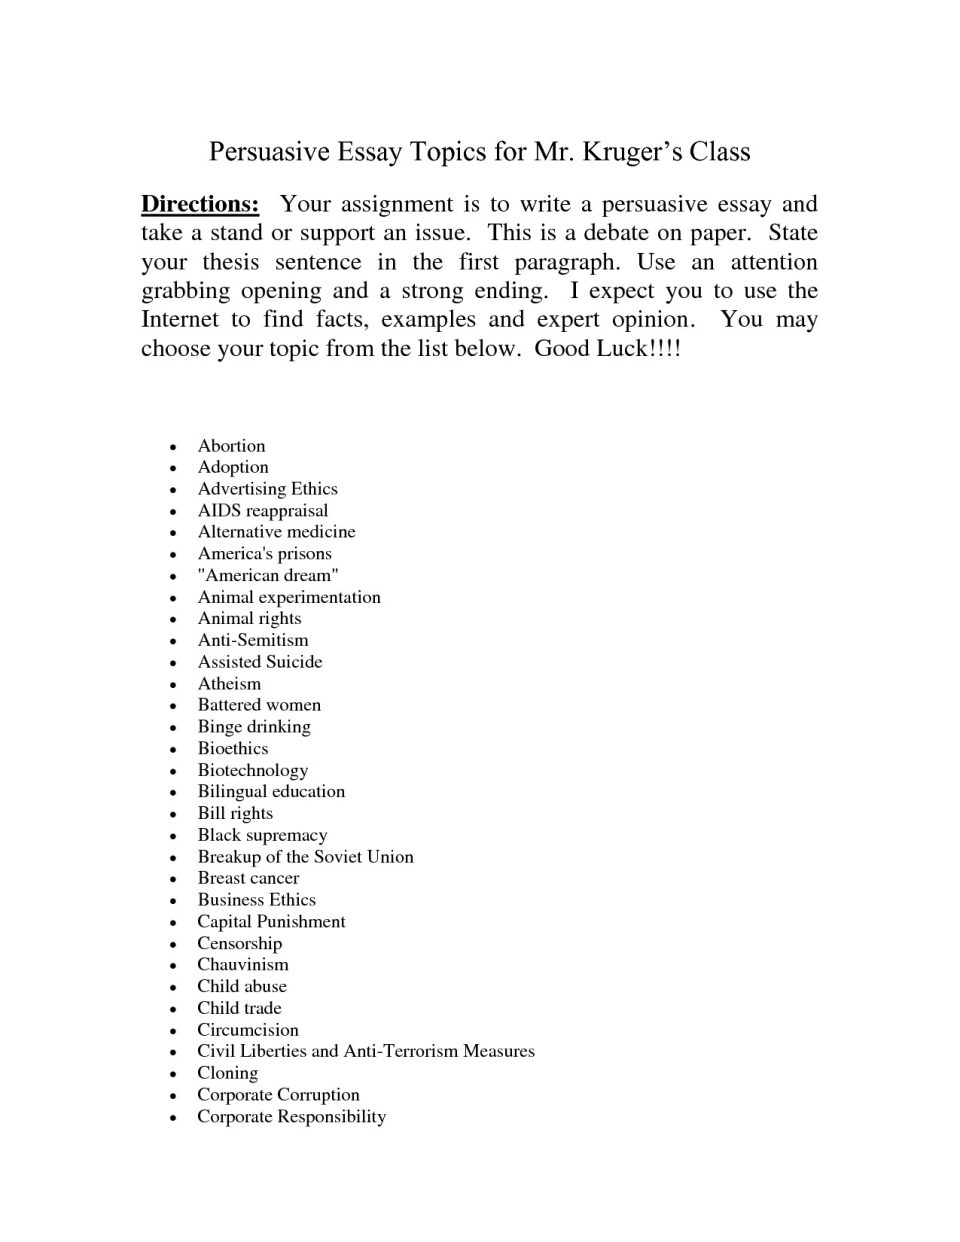 001 Topic For Essay Barca Fontanacountryinn Within Good Persuasive Narrative Topics To Write Abo Easy About Personal Descriptive Research Paper Informative Synthesis College Fantastic Computer Science Full